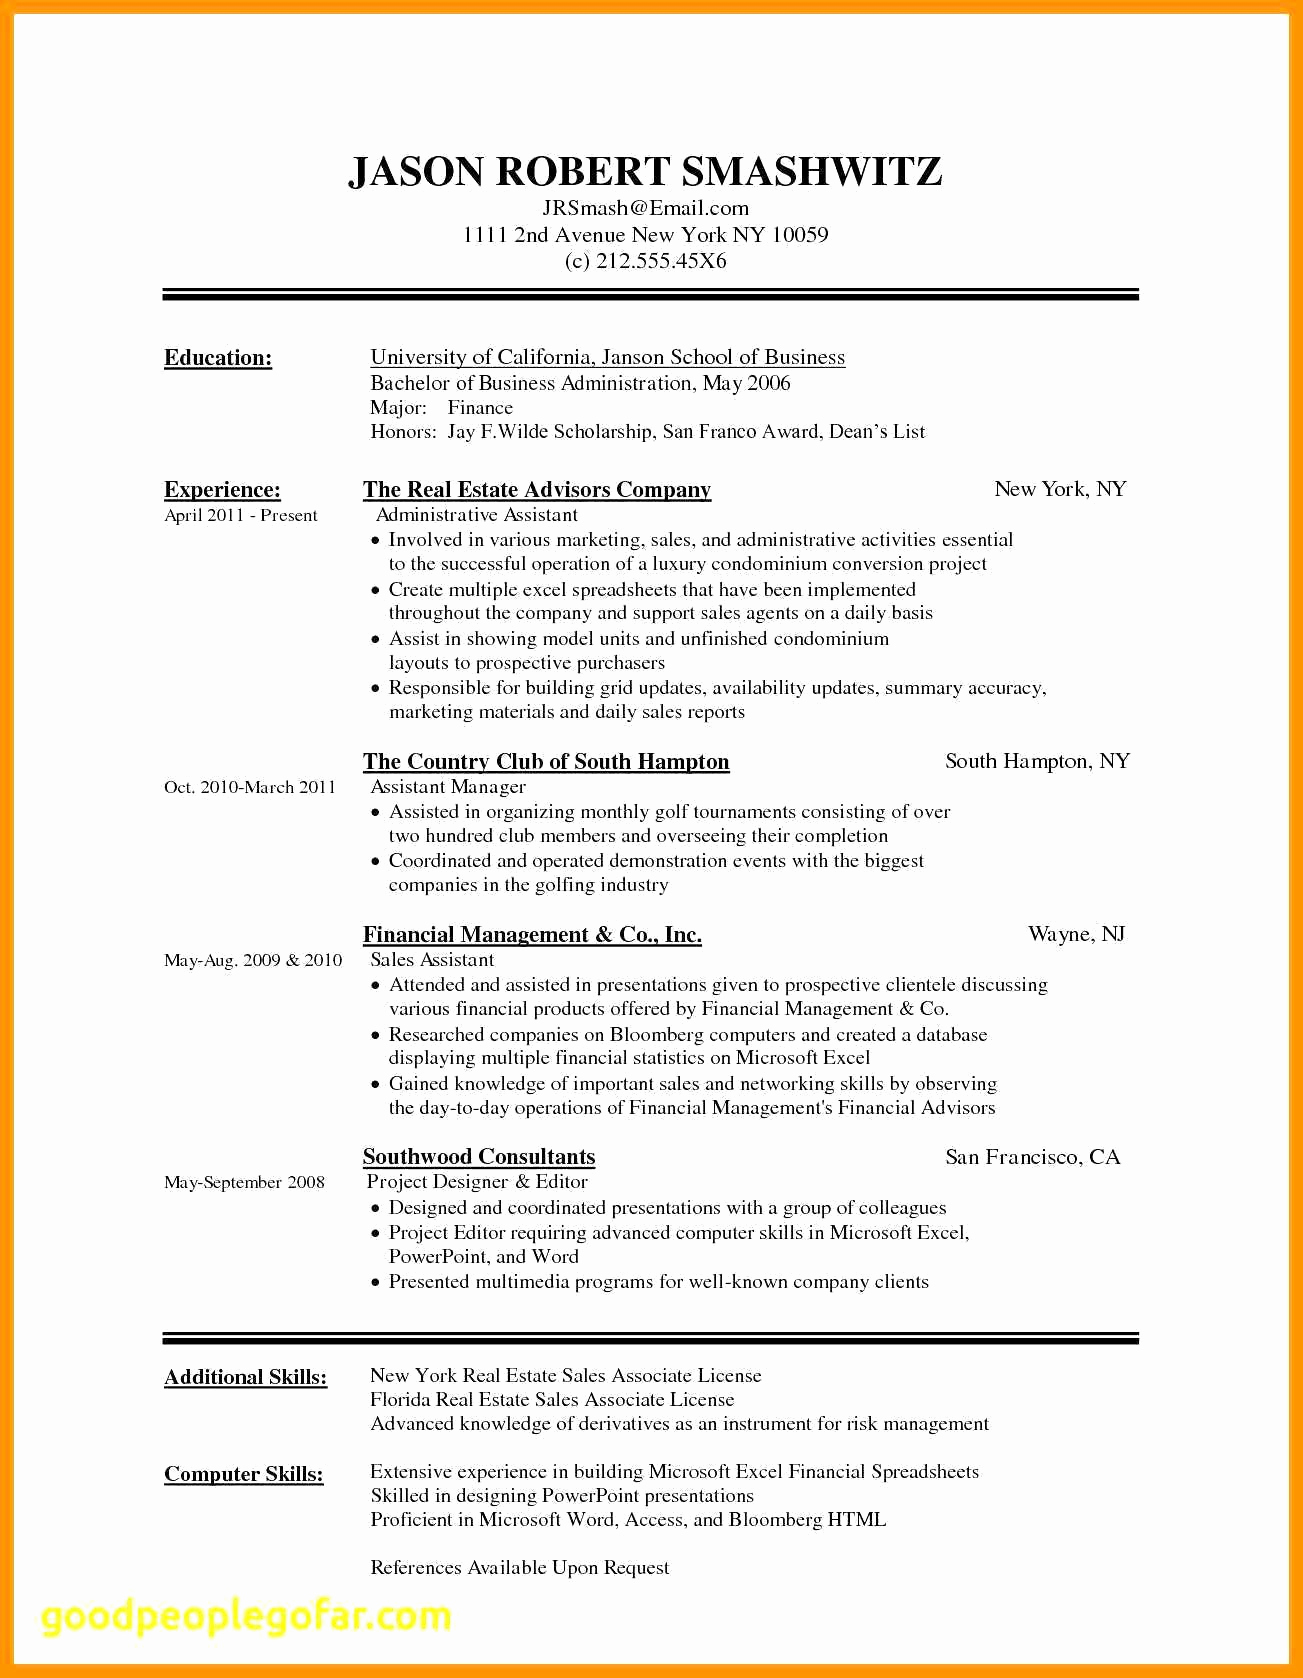 Attached is My Resume - attached Please Find My Resume Fresh How to Do A Cover Letter